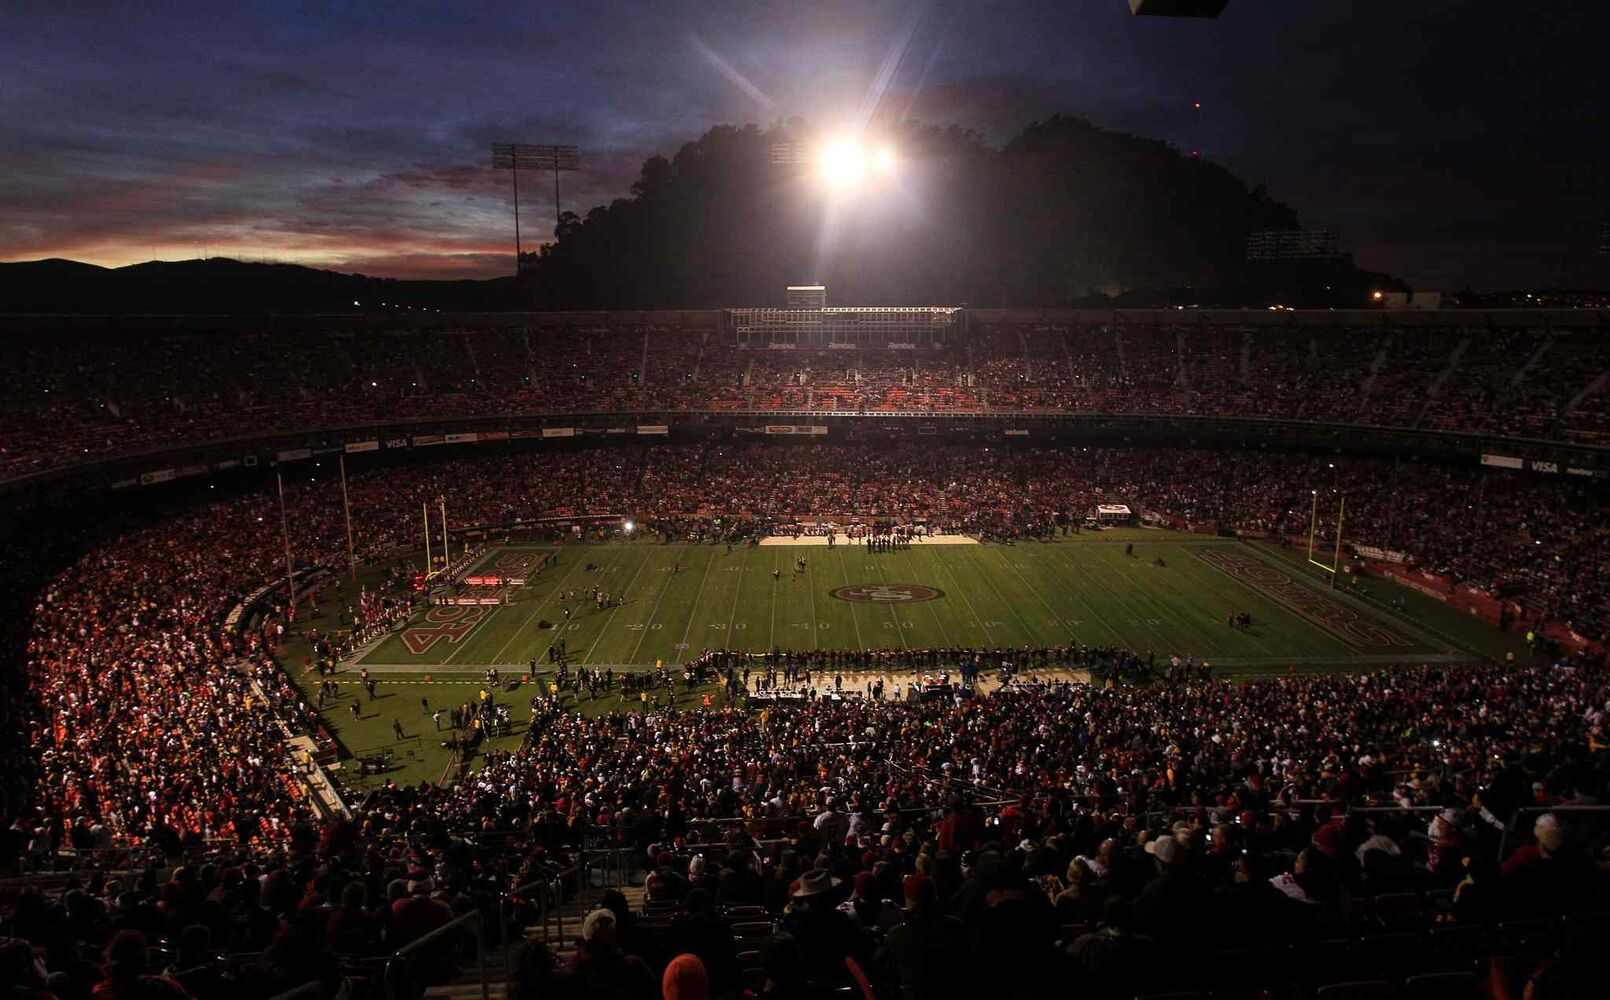 Candlestick Park is dimly lit during a power outage before an NFL football game between the San Francisco 49ers and the Pittsburgh Steelers in December 2011.